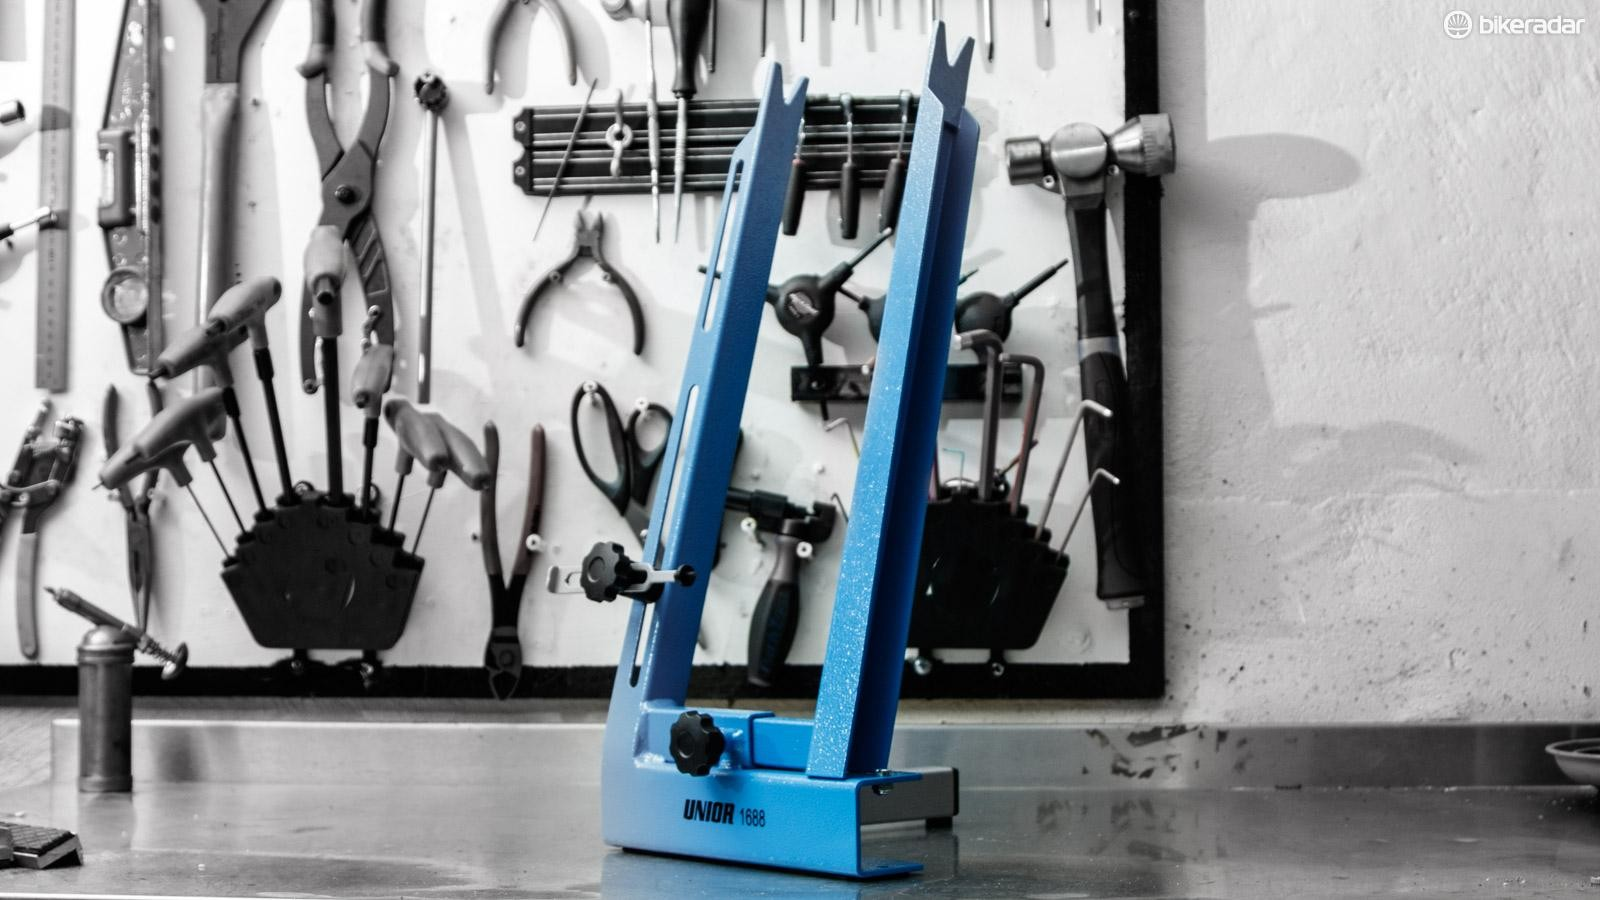 Average name, above average function. The 'Unior Wheel Centering Stand 1688 for home use' is well worth consideration